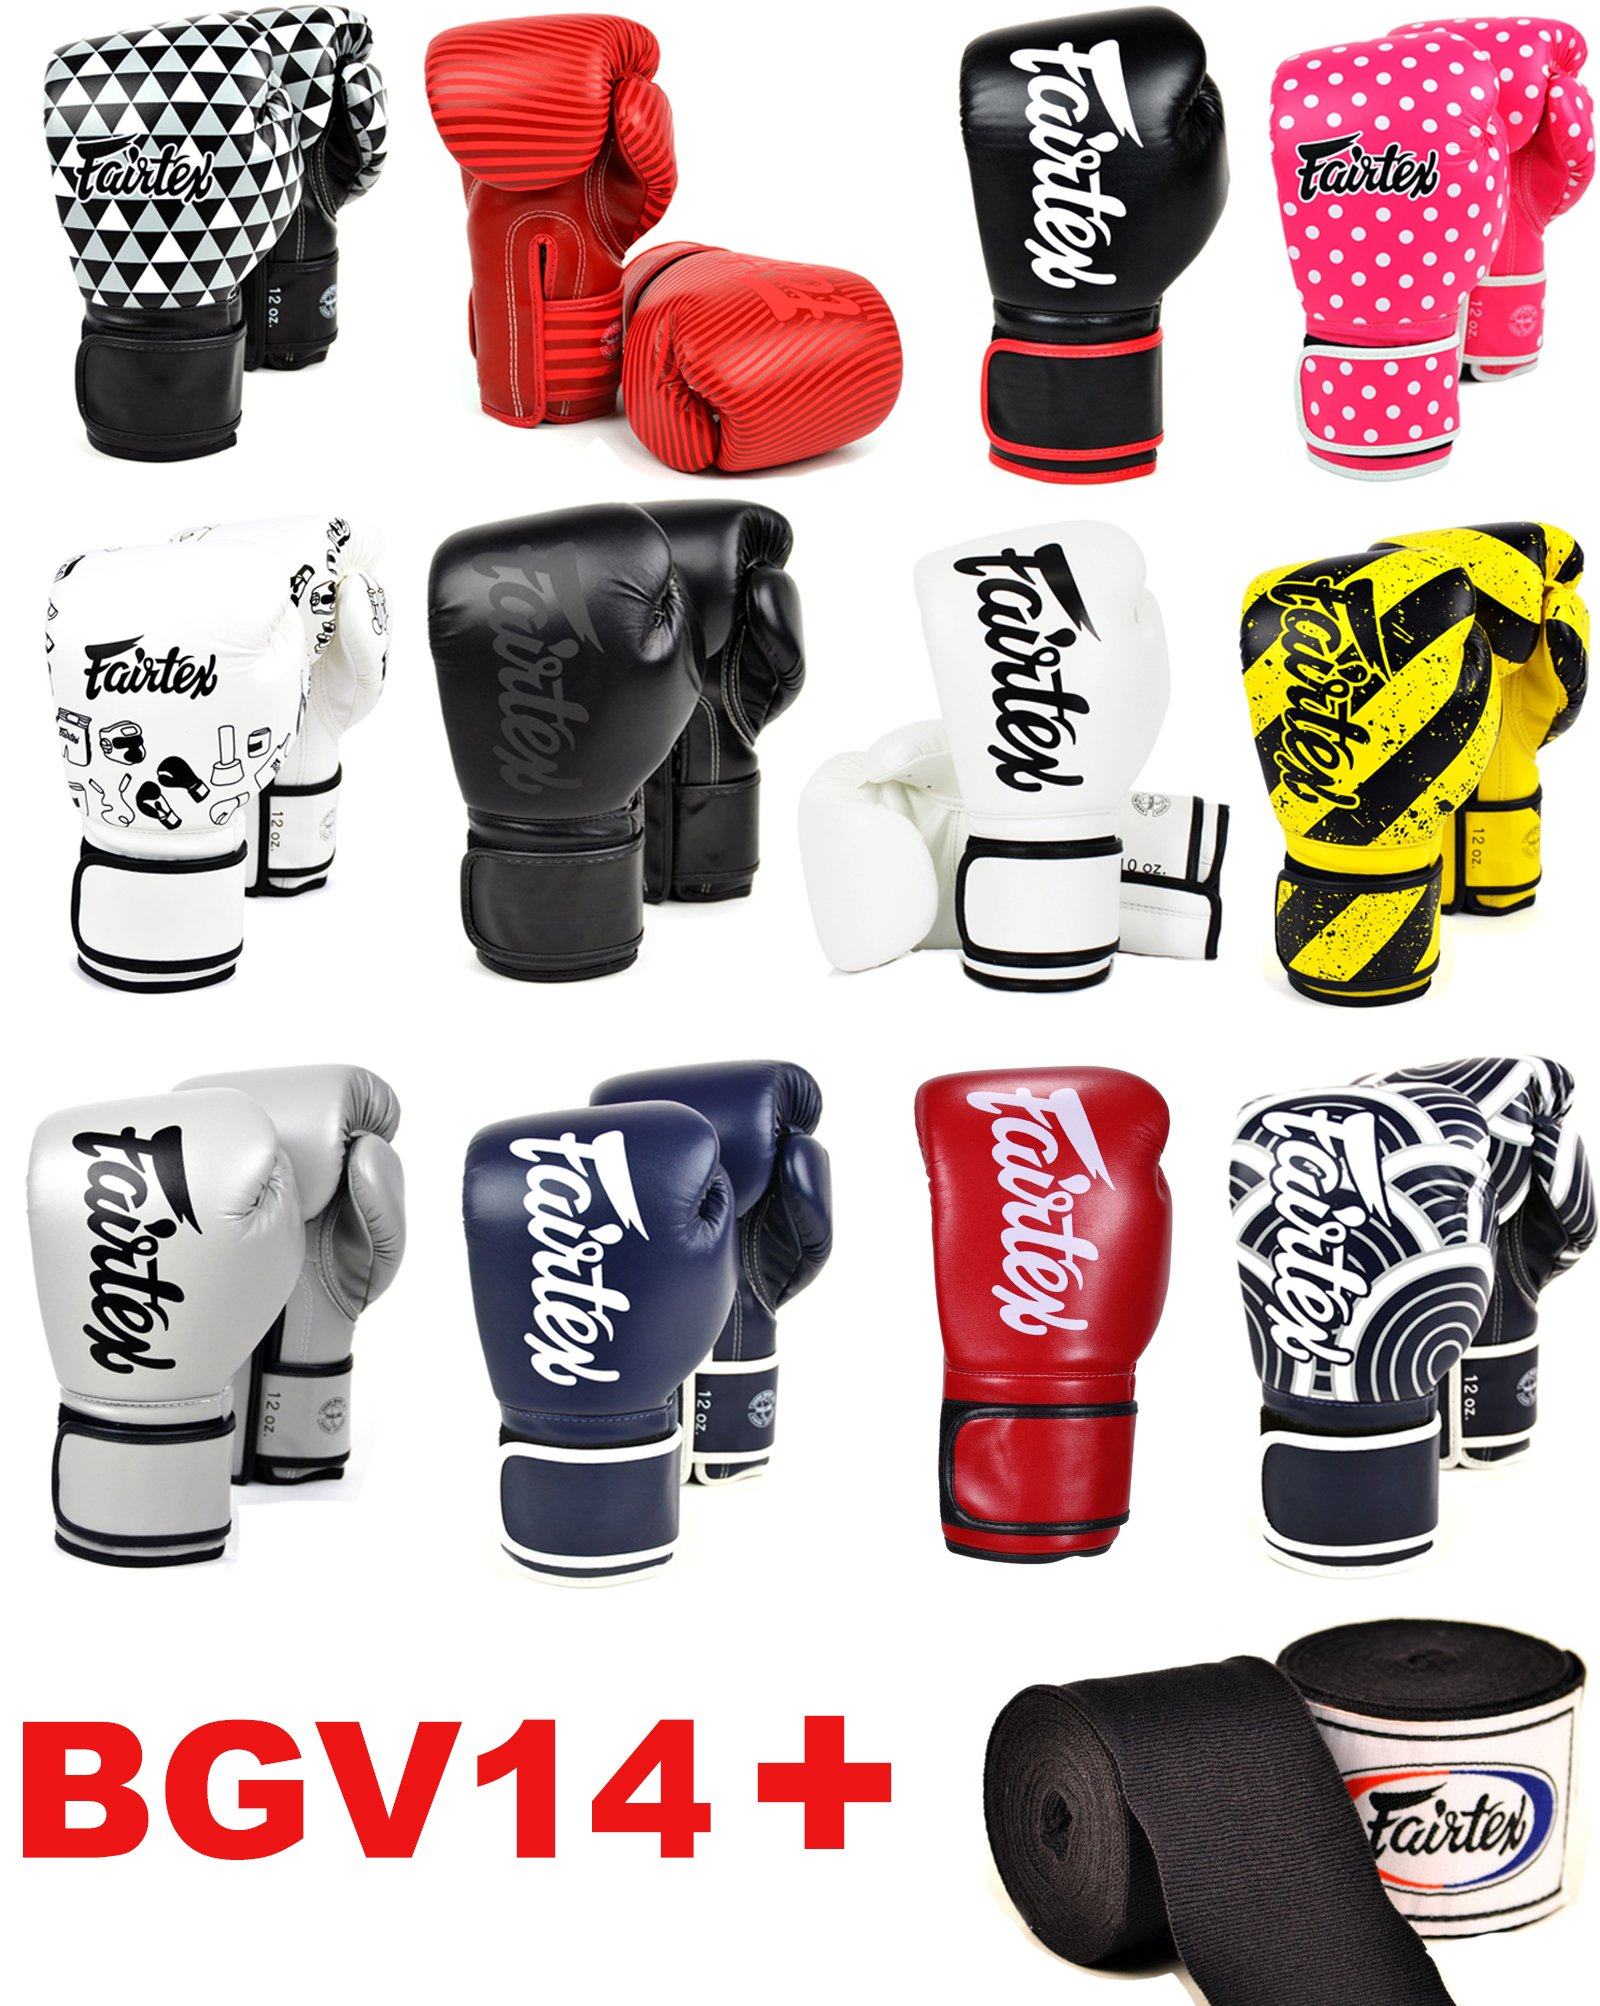 Fairtex BGV14 Microfibre Boxing Gloves Muay Thai Boxing, MMA, Kickboxing,Training Boxing Equipment, Gear for Martial Art (Japanese Art, 8 oz)